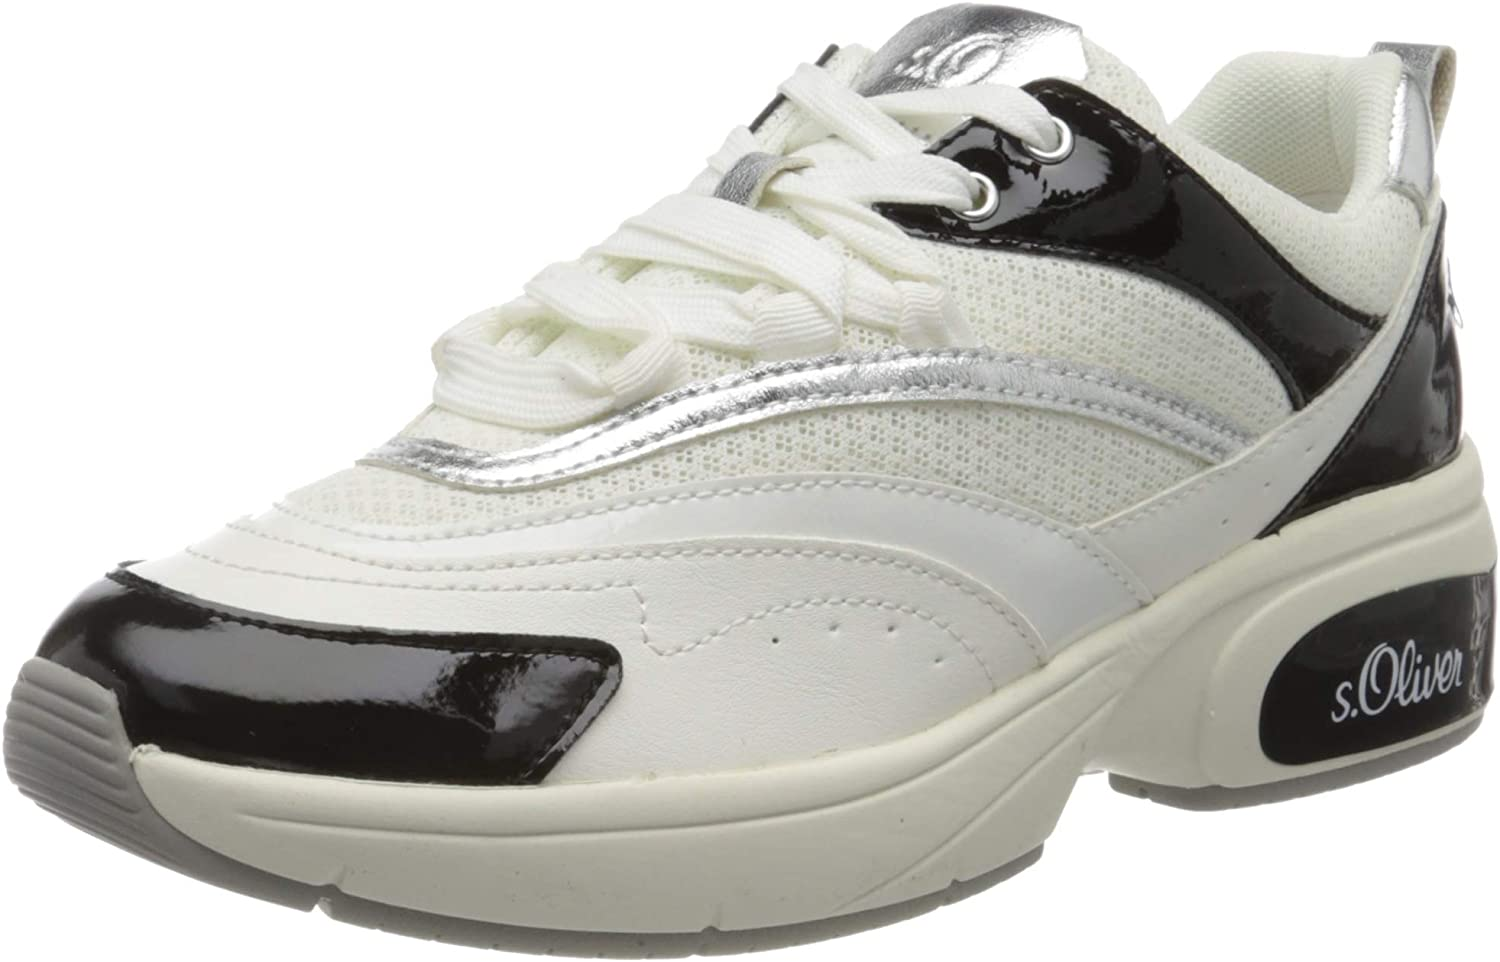 s.Oliver Import Women's Trainers NEW before selling Low-top